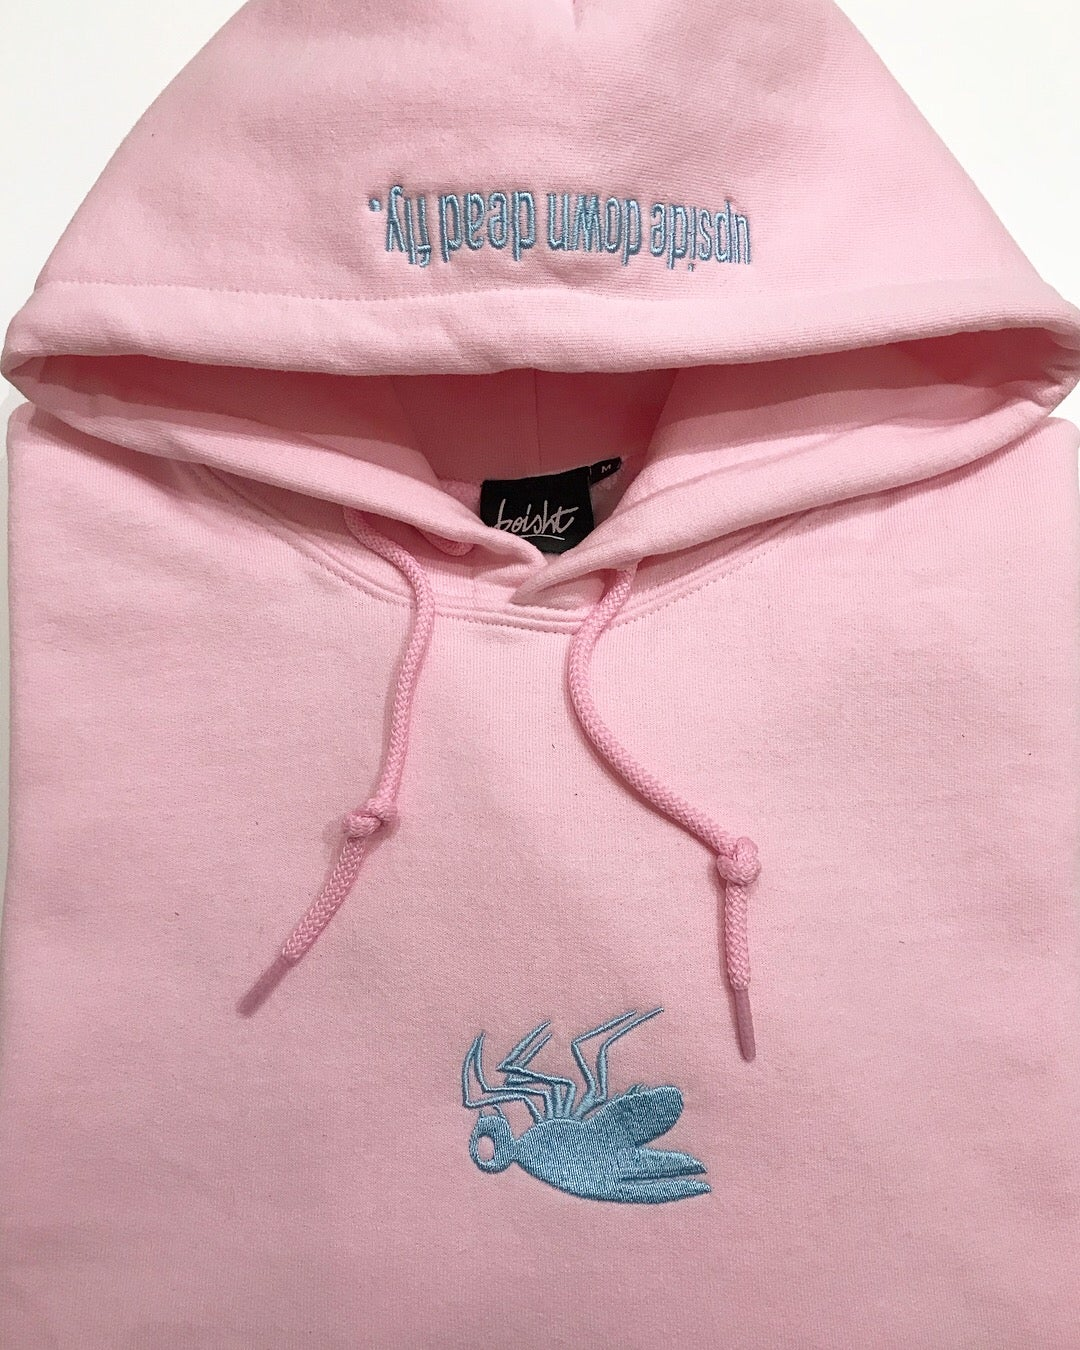 Image of GUMBUBBLE FLY HOODIE